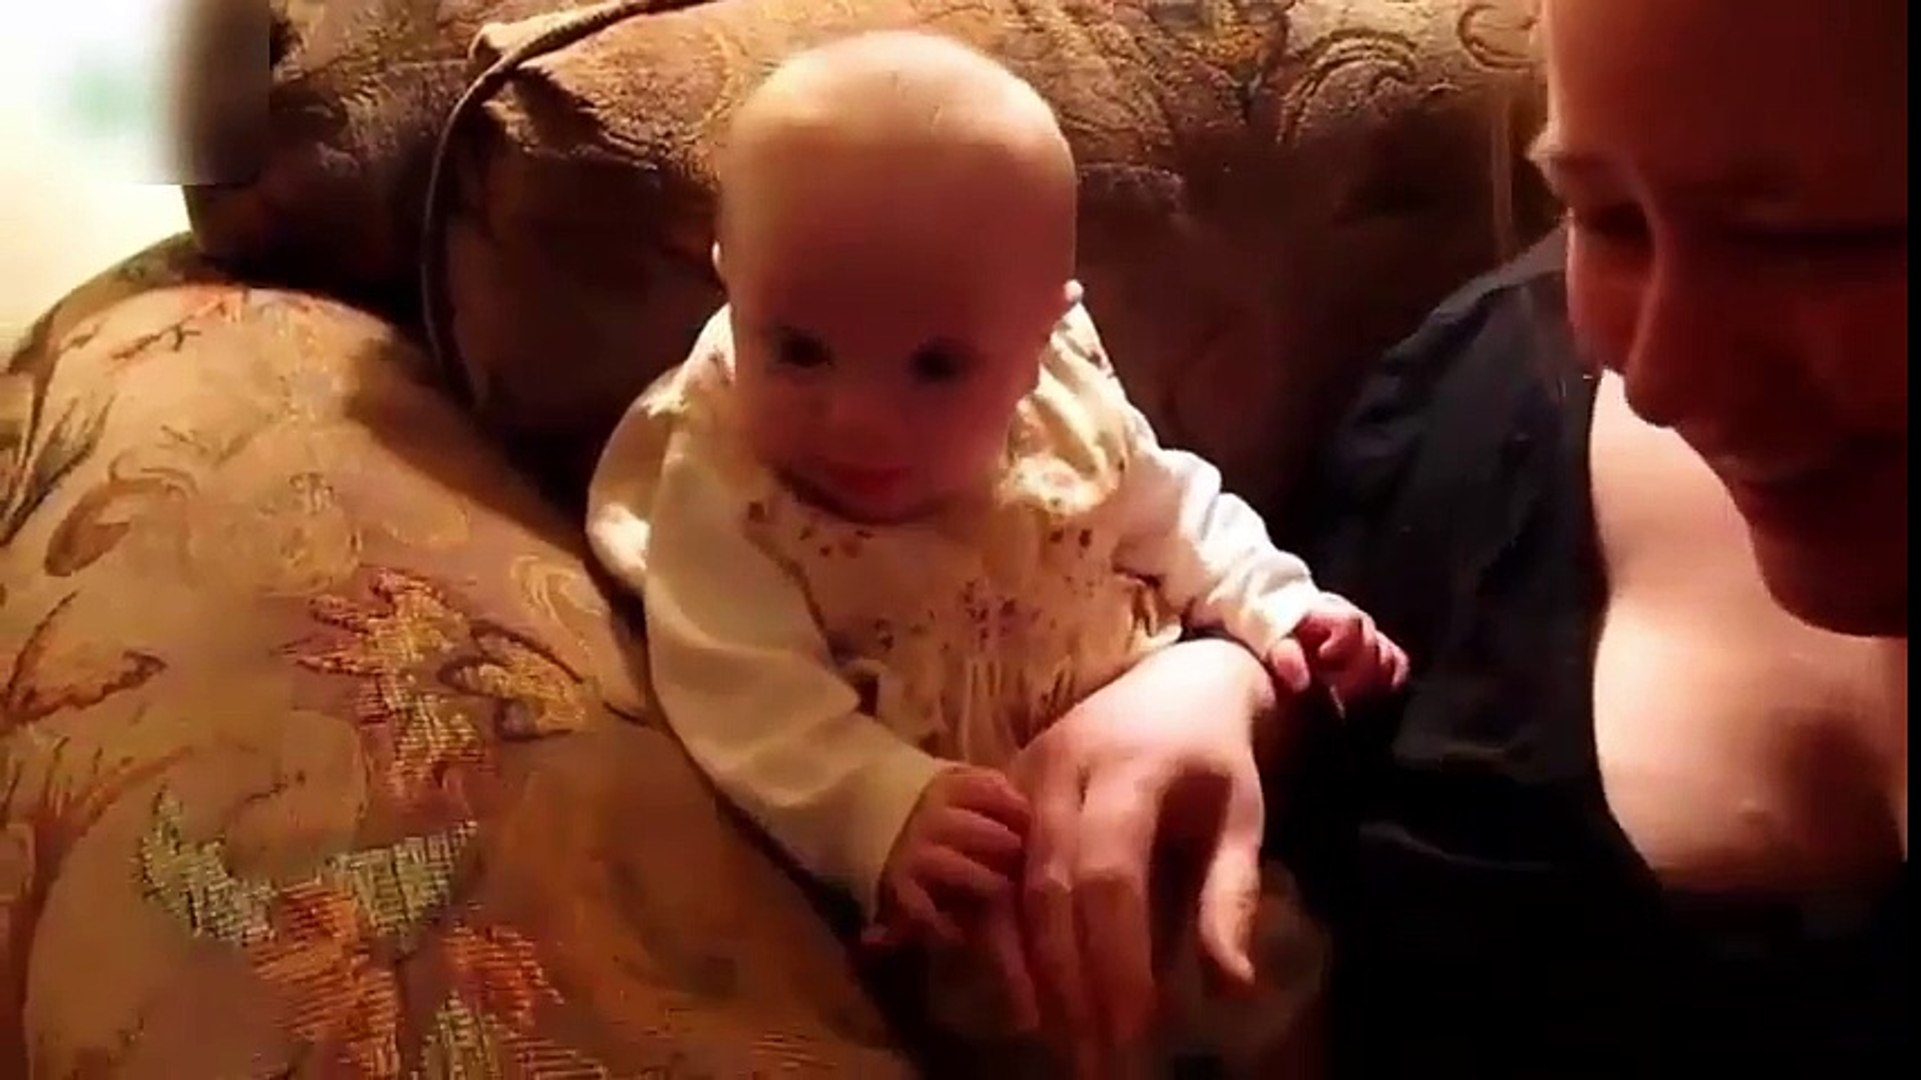 Funny Cute Babies Laughing Compilation   Funny Cute Baby Laughing Videos